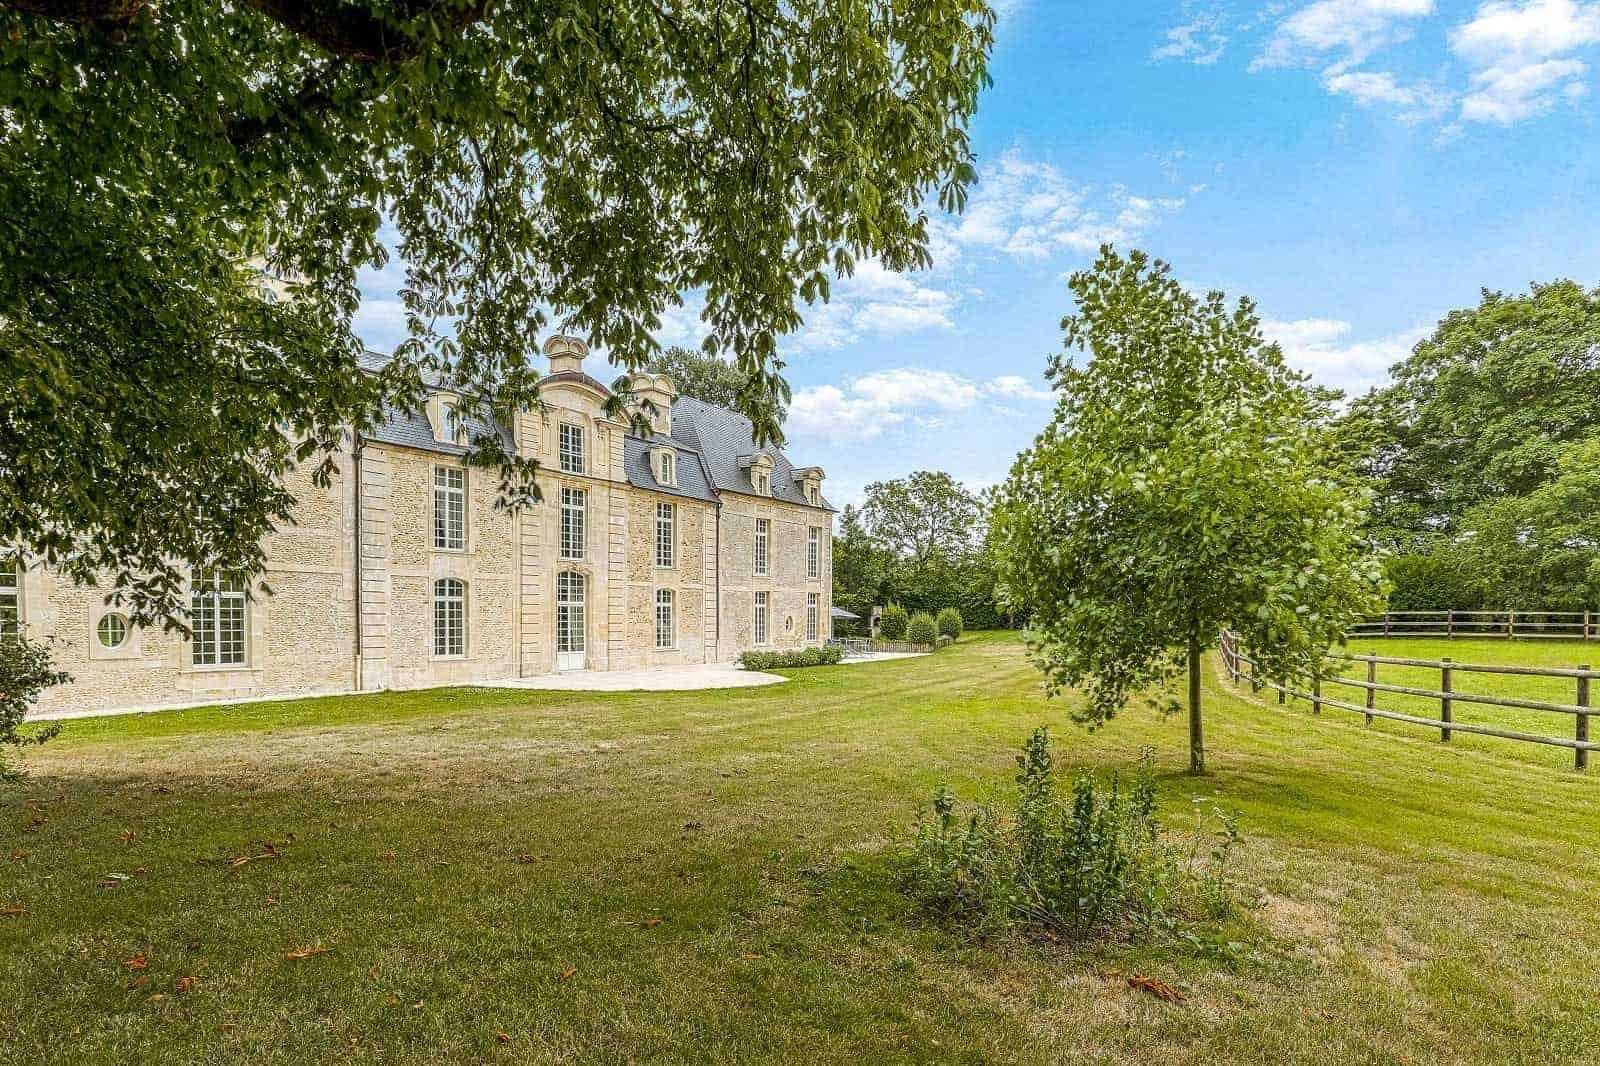 Exceptional One Story Garages For Sale: Exceptional Manor Estate For Sale Near Caen: 5 Bedrooms